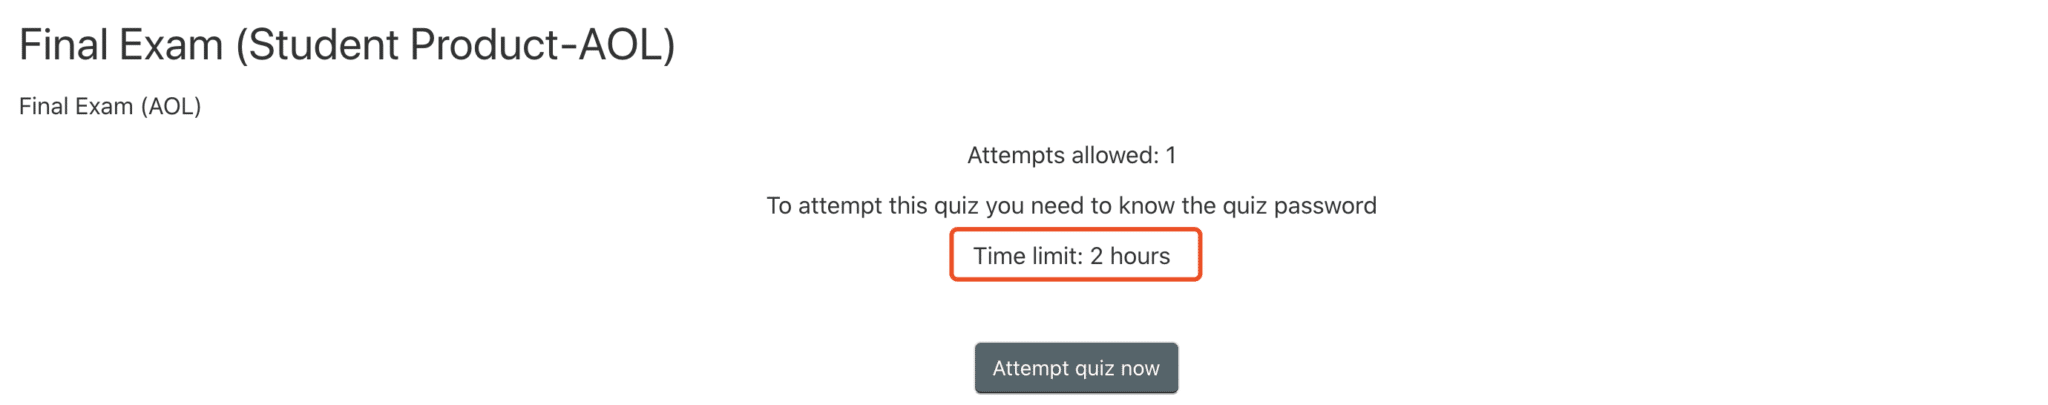 Exam time limit